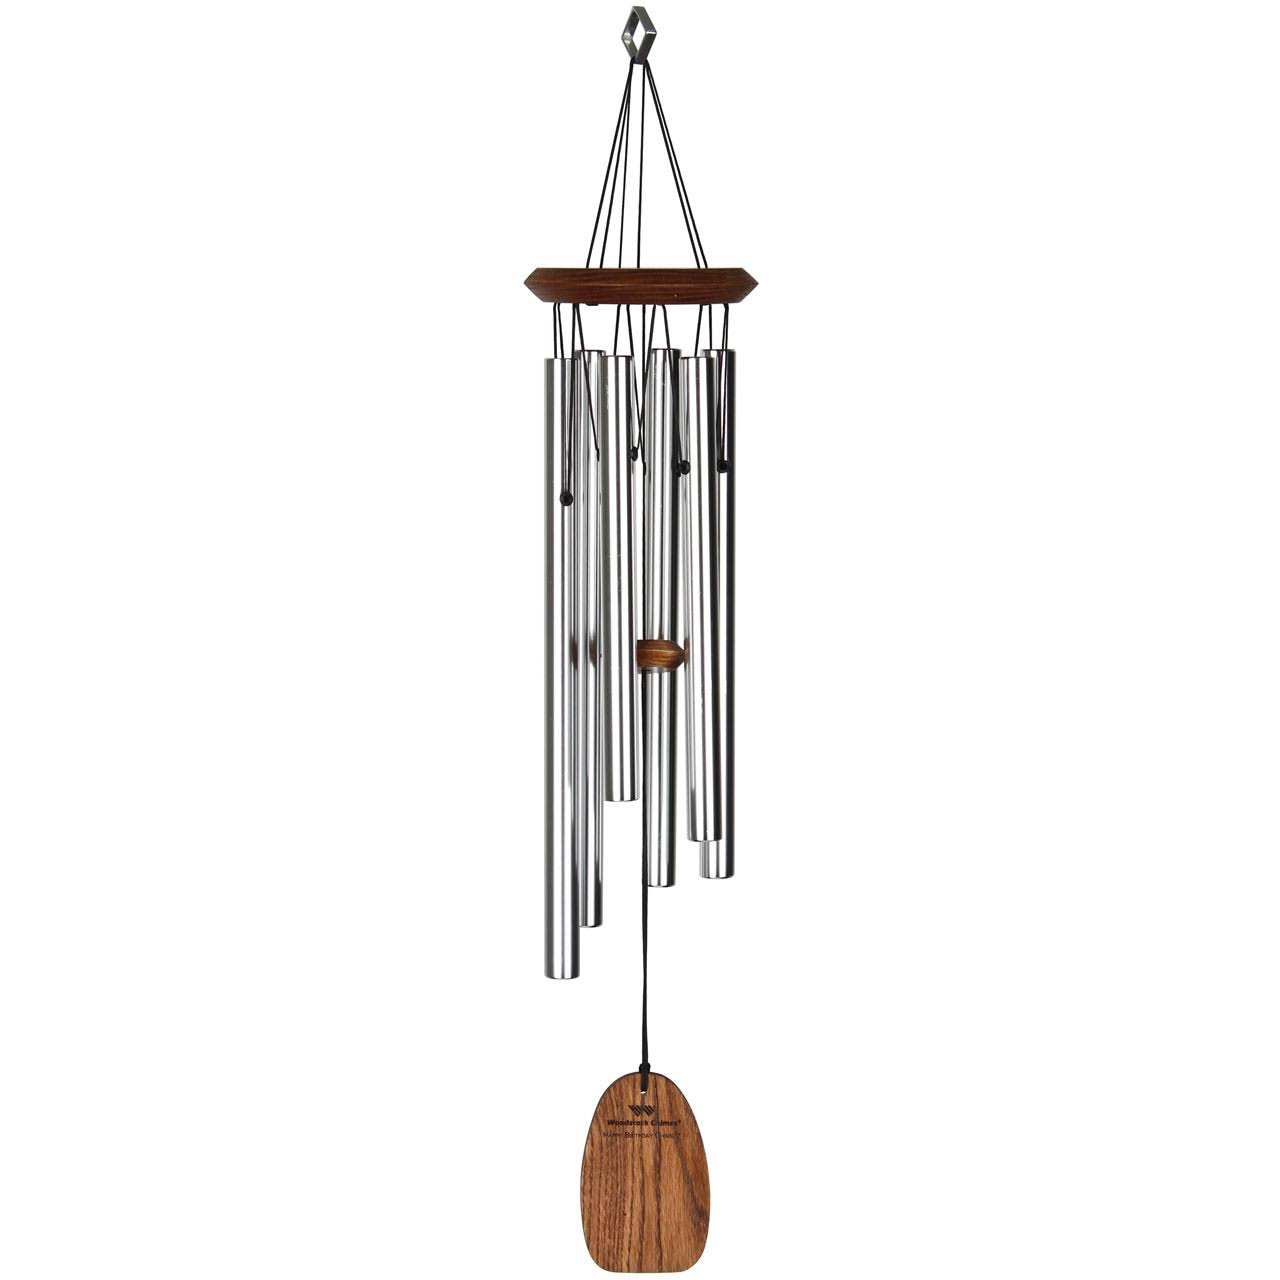 Woodstock Chimes Sound Rattle Metal Wind Chime - Silver